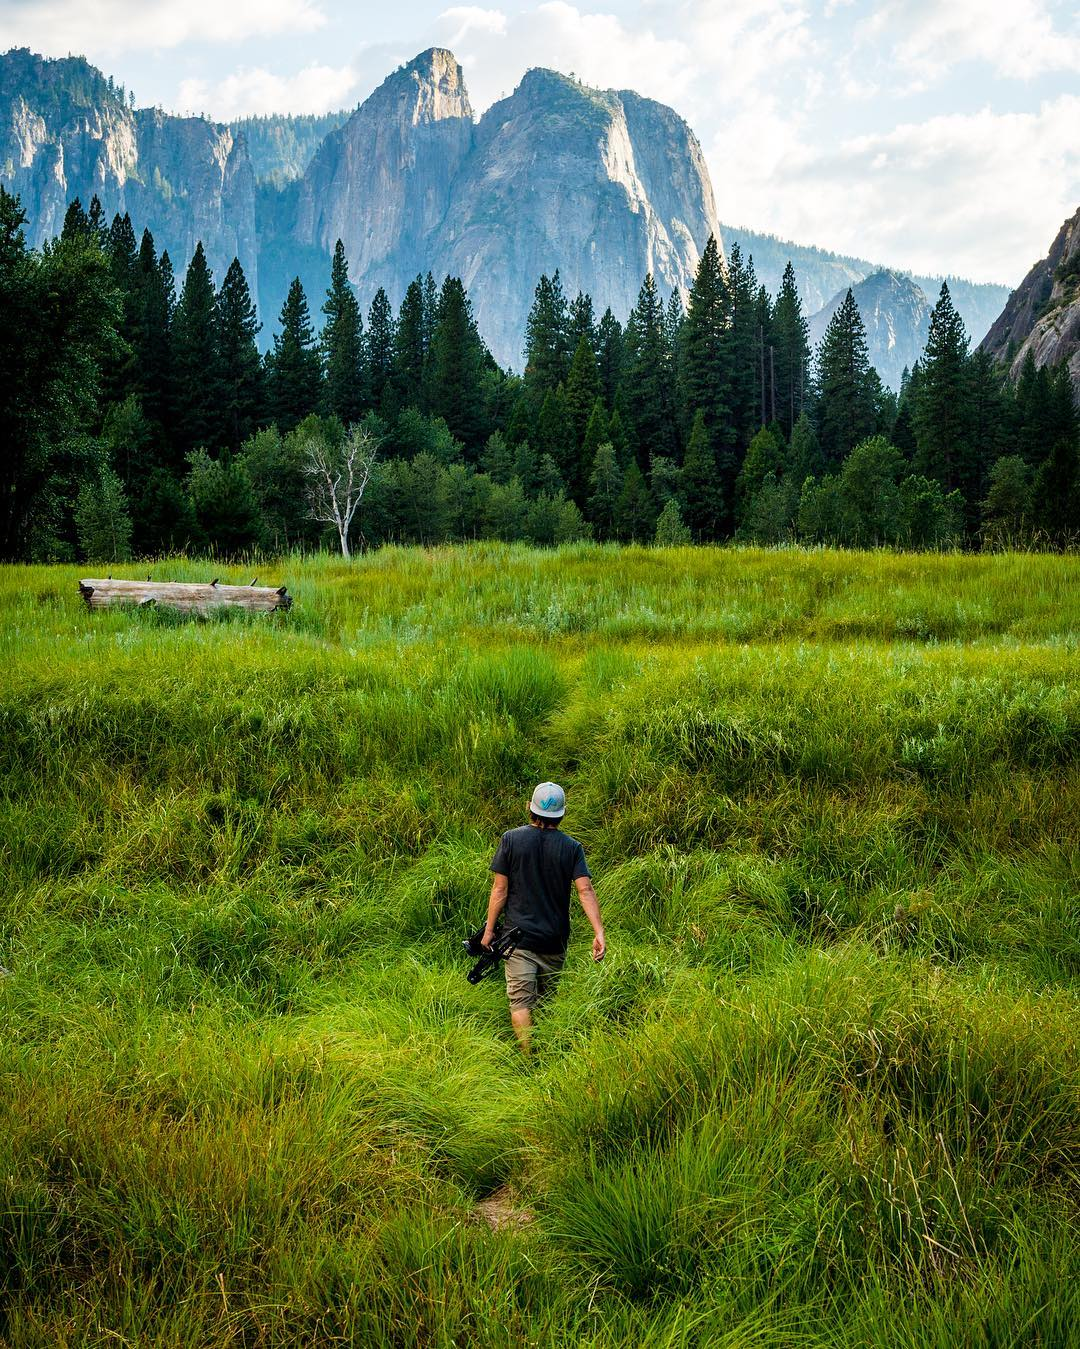 A throwback to @kylormelton in the great outdoors of Yosemite